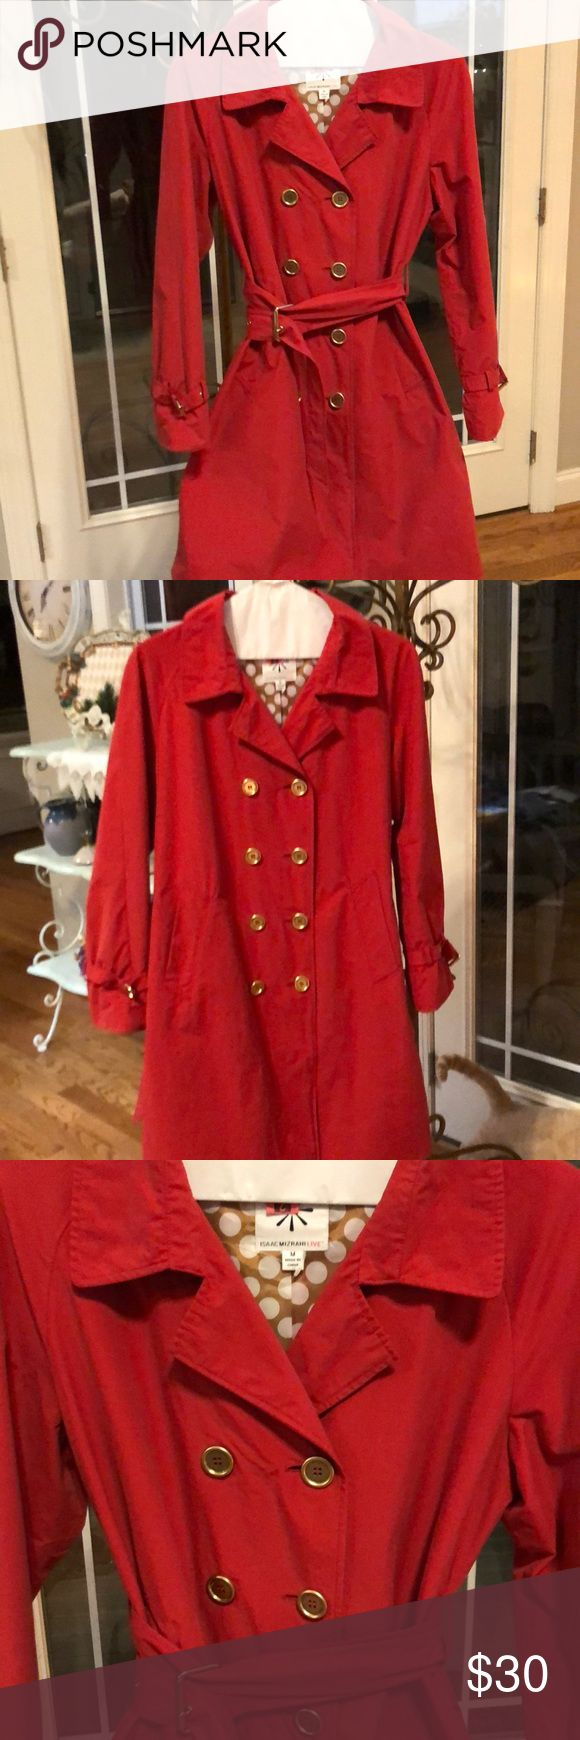 """Issac Mizrahi Live Rain Coat Lined Very Good Condition, No Stains, maybe wore 4 times.  Tomato Red (not a bright red) fully lined( last picture) rain wear.  Just picked up from the cleaners, ready for you  to wear.  I'm 5'6"""" and it hits right below my knee.  Wear with belt, or without belt.  8 buttons, 2 pockets, Split in back, flap in back, buckle around sleeves to match belt buckle. Isaac Mizrahi Jackets & Coats"""